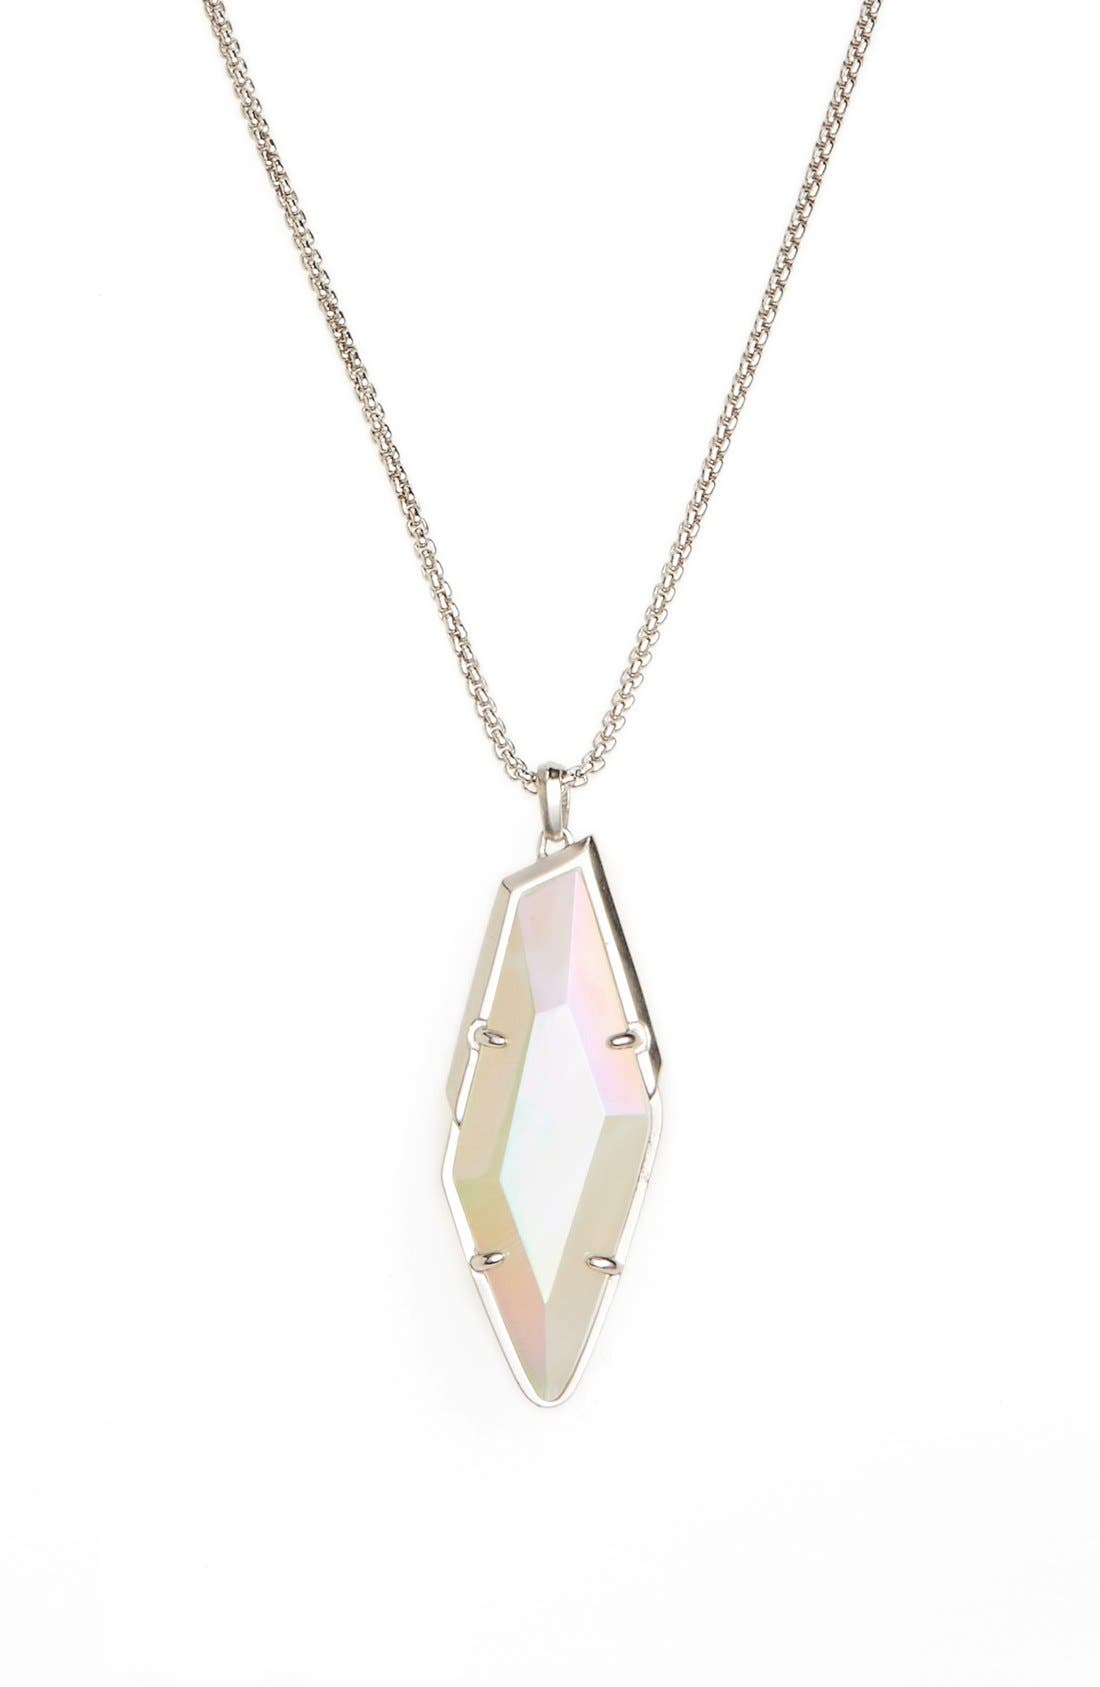 Kendra Scott 'Beatrice' Pendant Necklace